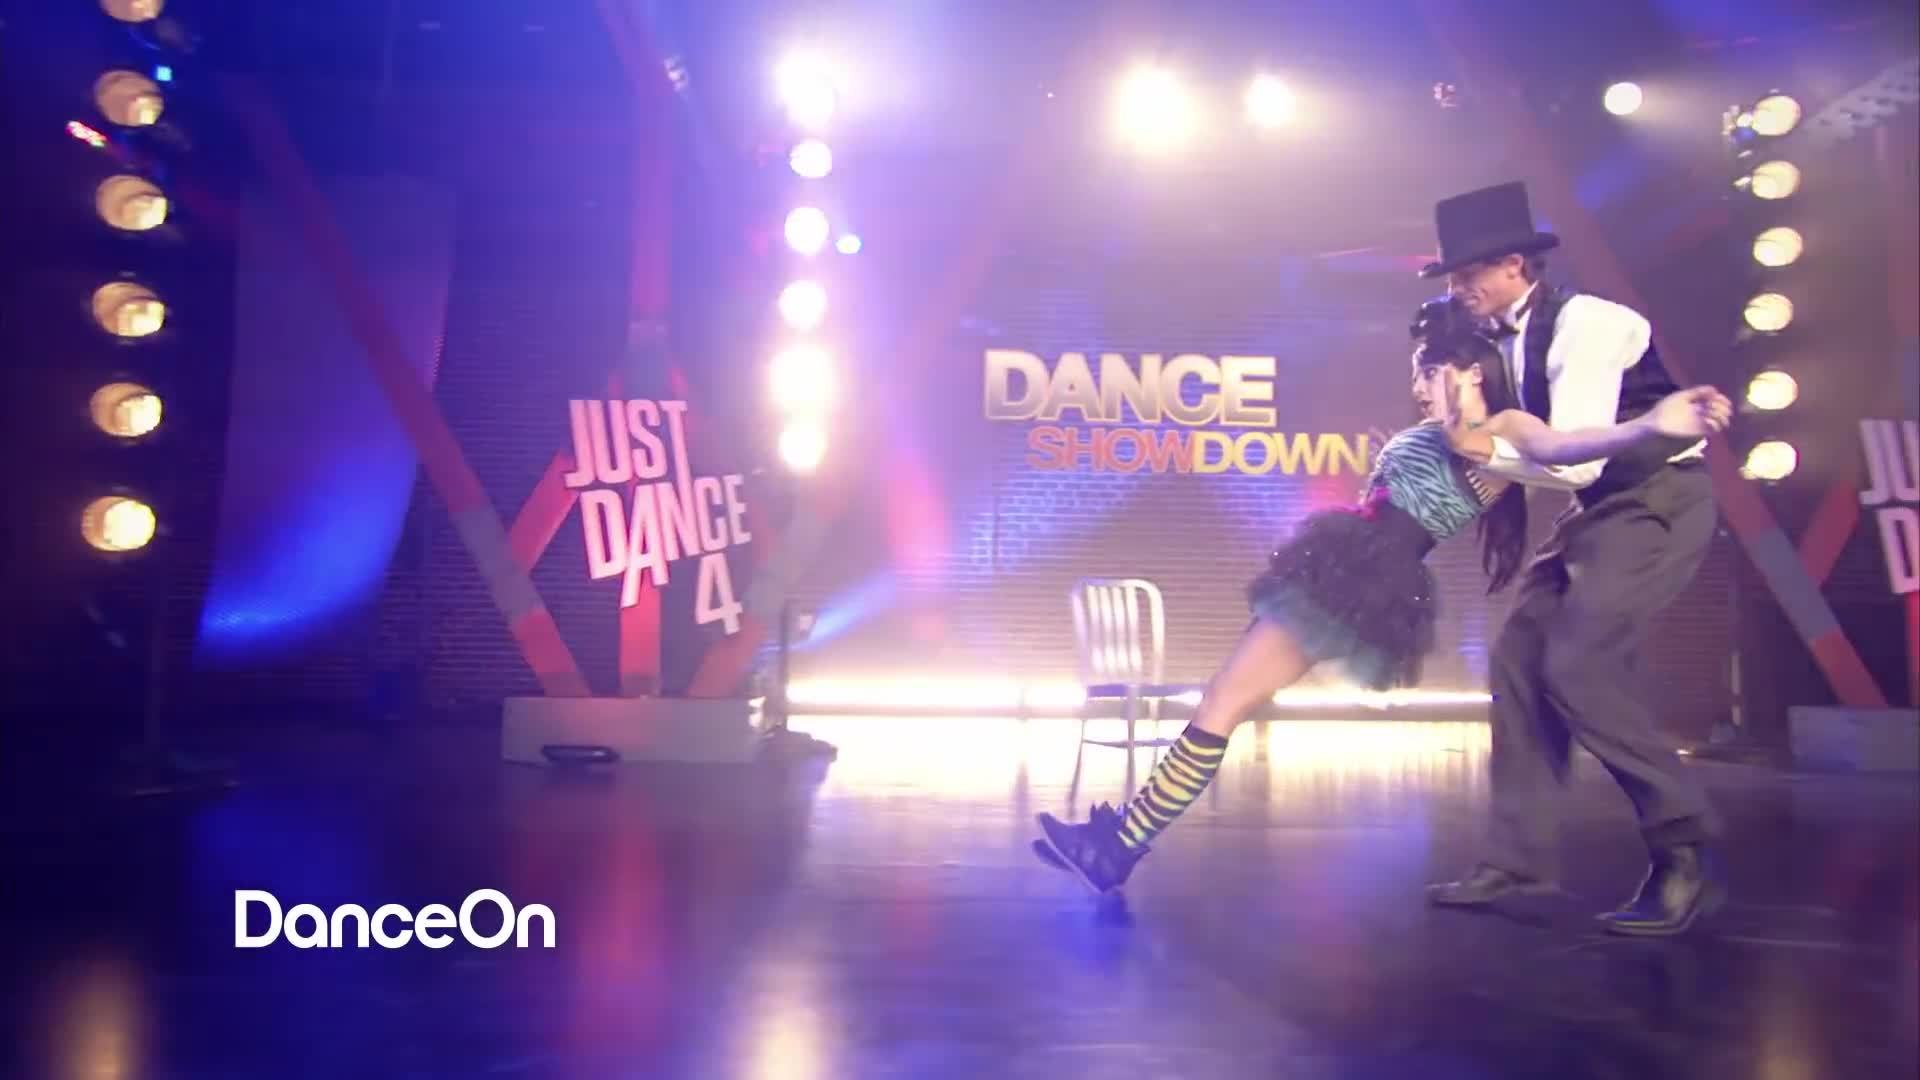 dance showdown, dance showdown season 2, misshannahminx dance, Dance Showdown Presented by D-trix - Miss Hannah Minx Dance Performance (Episode 5) GIFs